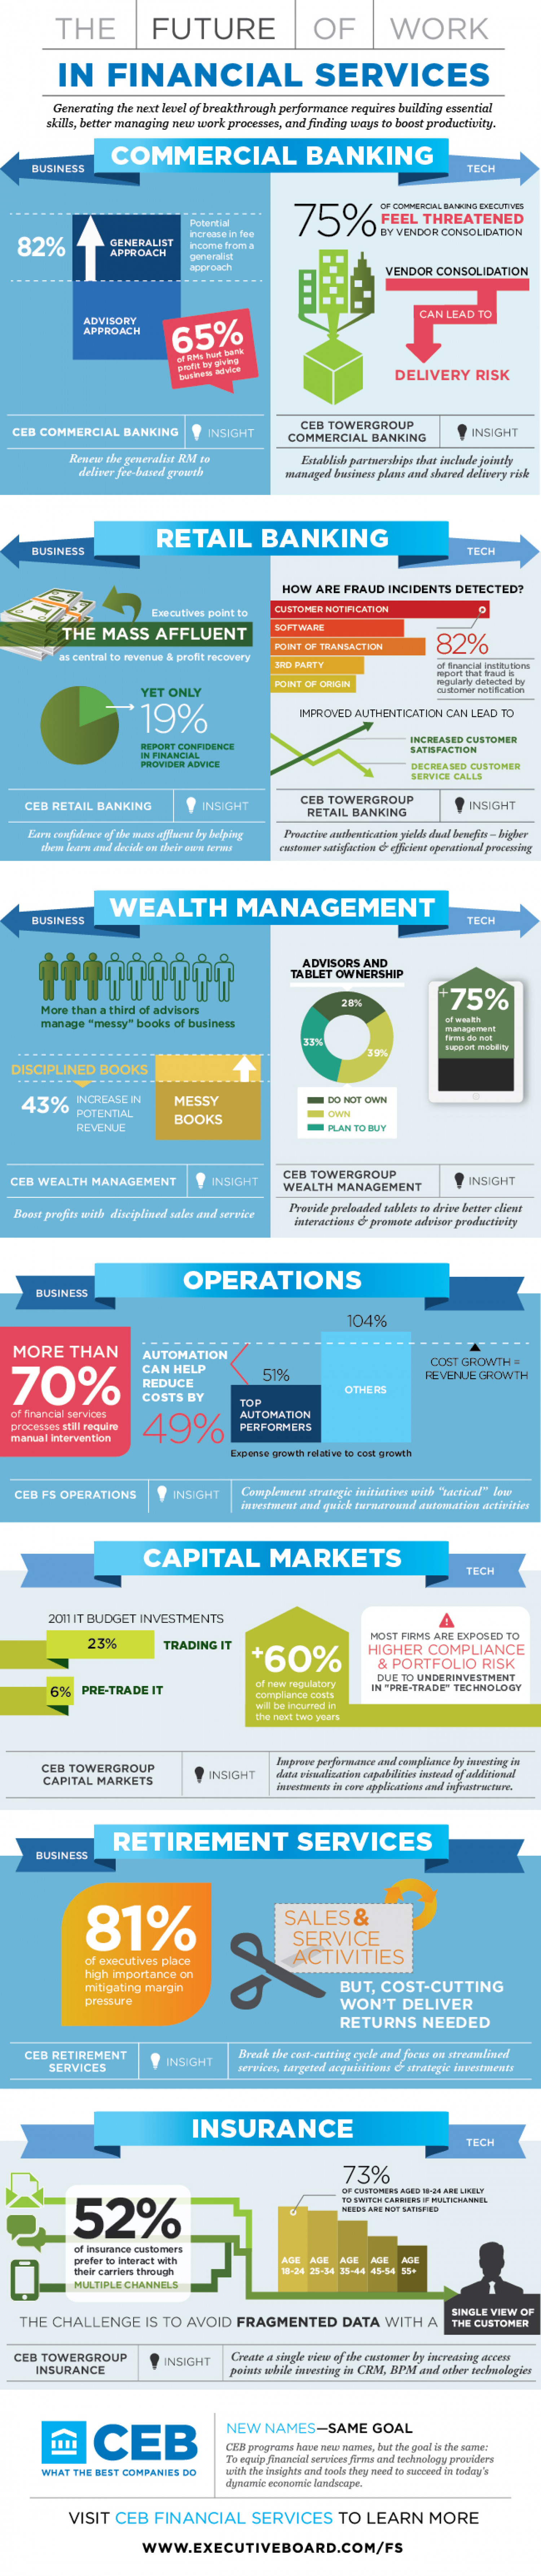 Future of Work in Financial Services Infographic